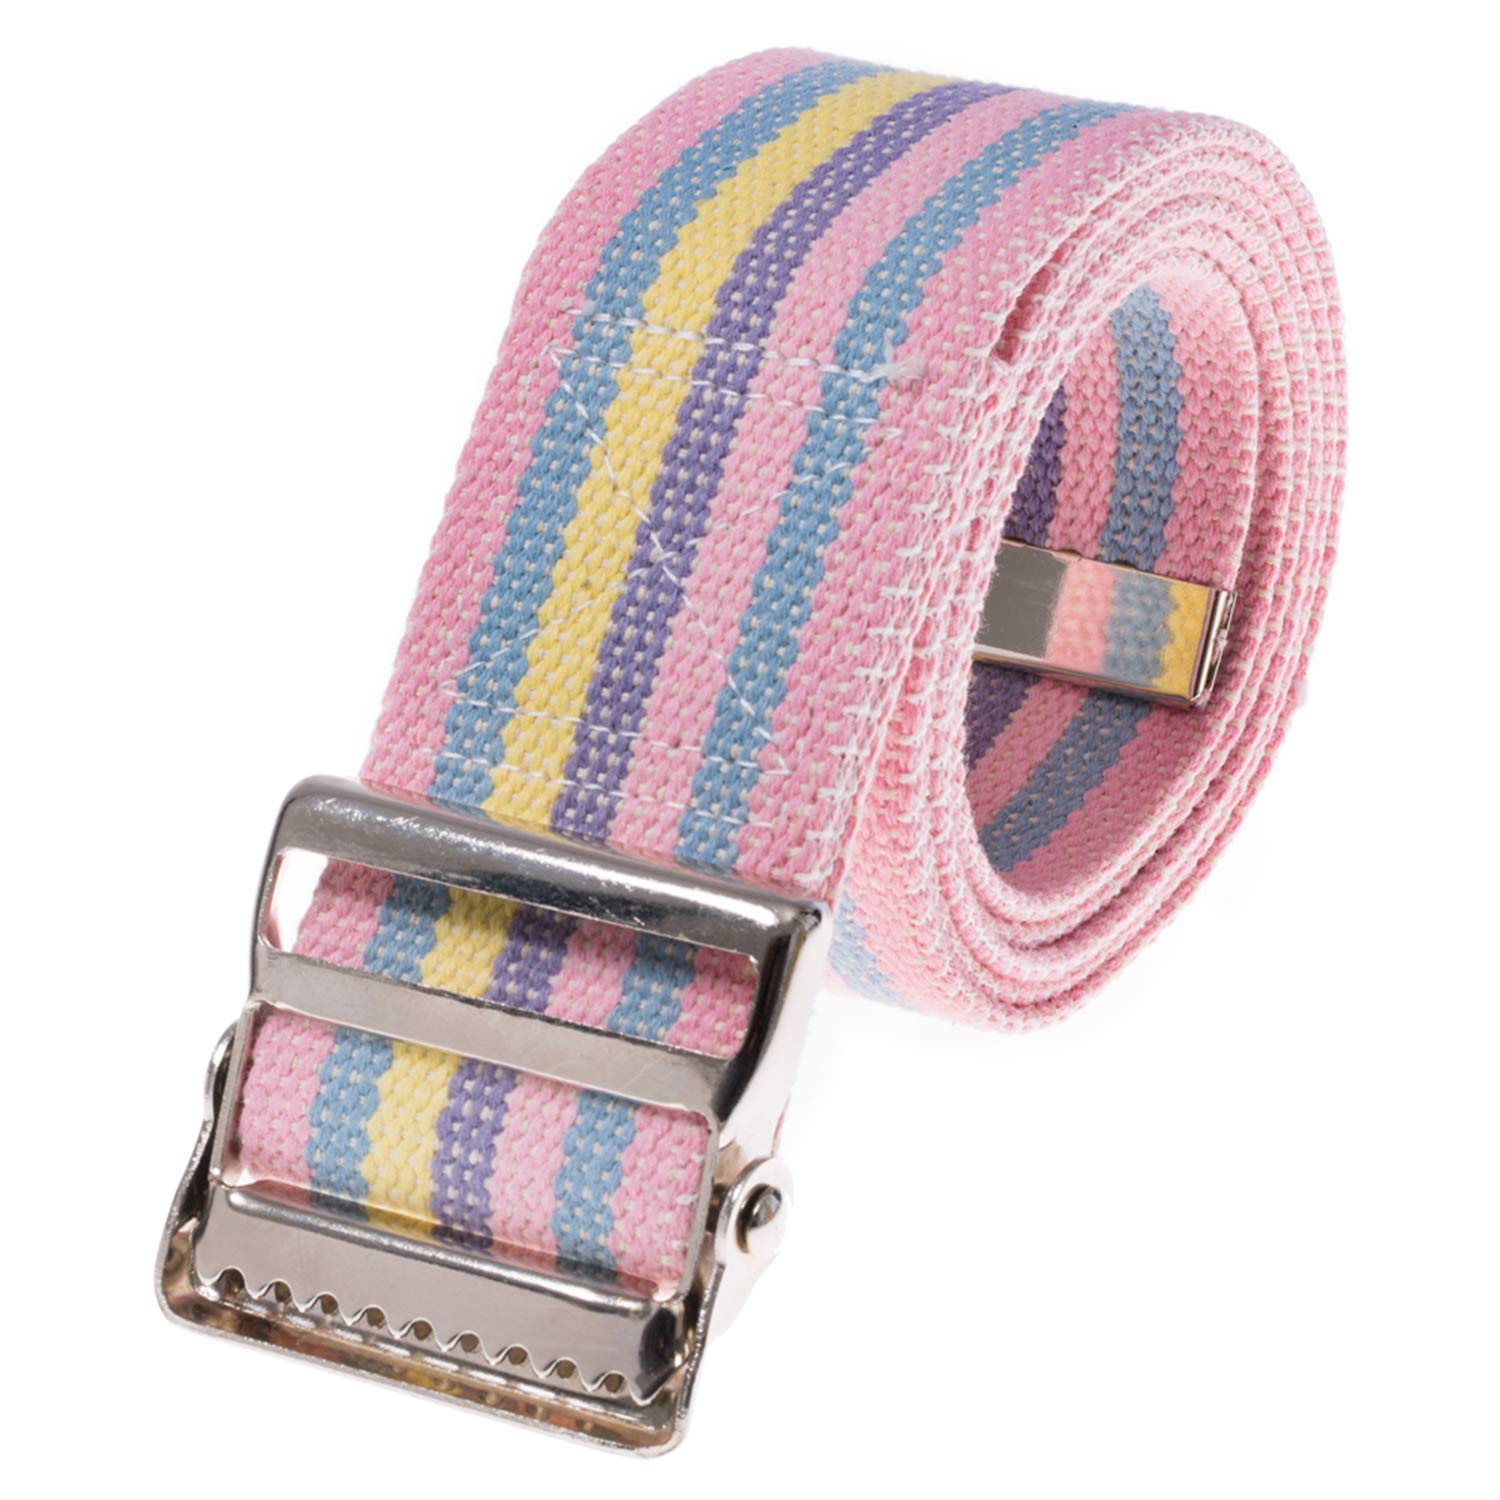 COW&COW Transfer and Walking Gait Belt with Metal Buckle for Caregiver Nurse Therapist 2 inches(Rainbow, 72inches) by COW&COW